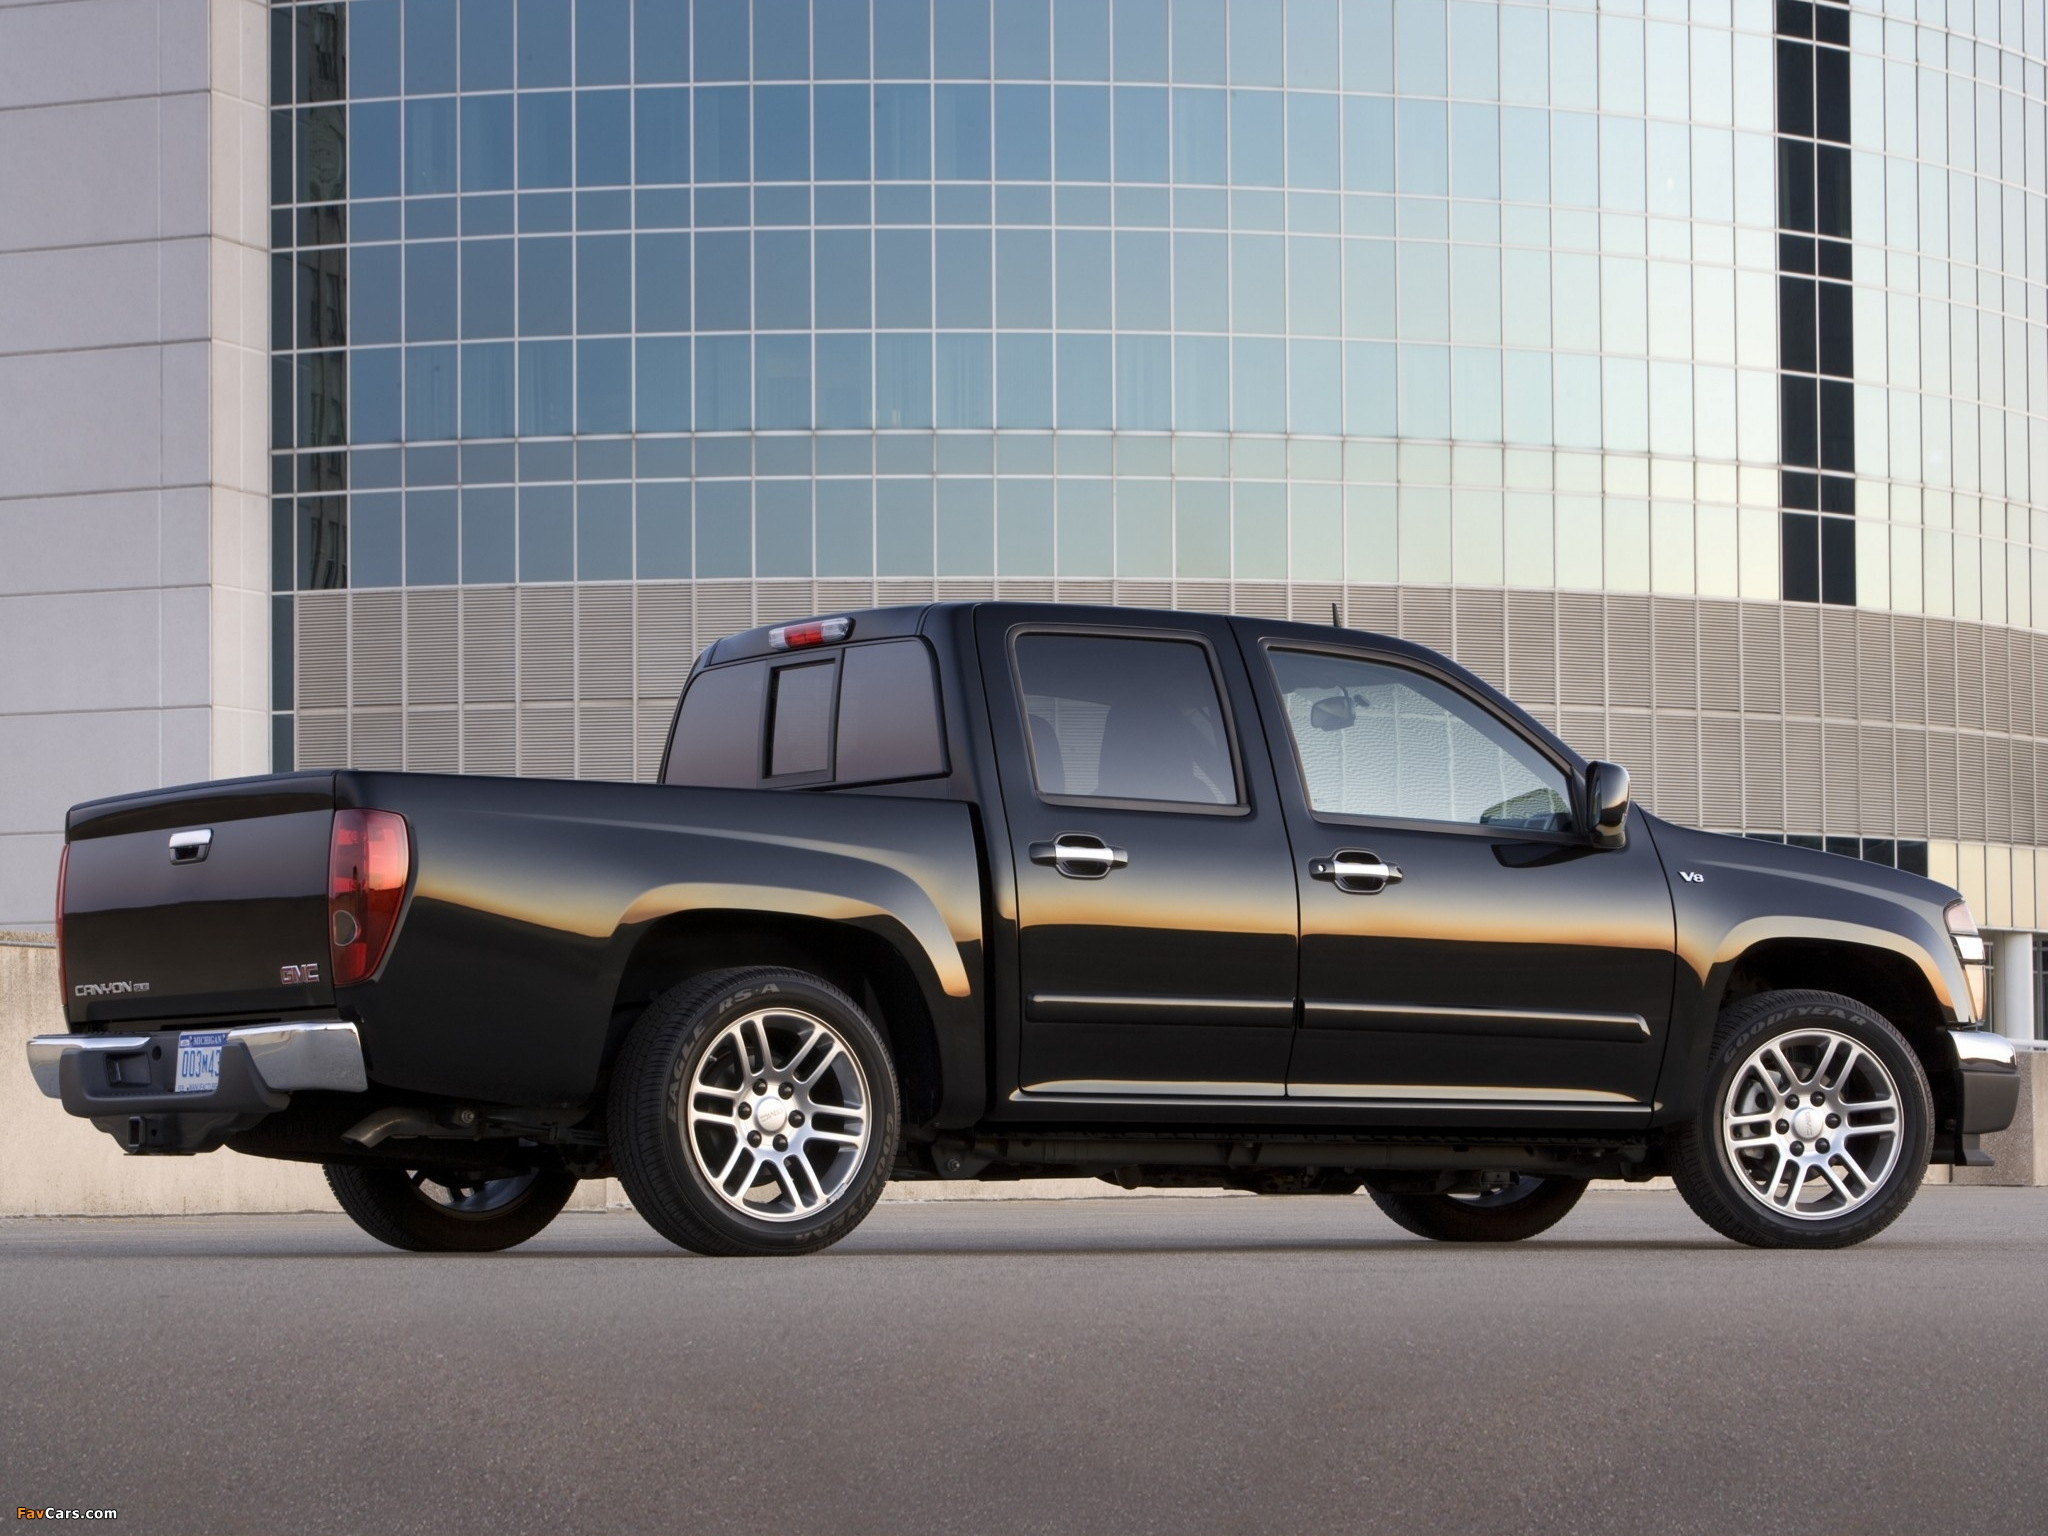 GMC Canyon Crew Cab Sport Suspension Package 2006 photos (2048 x 1536)